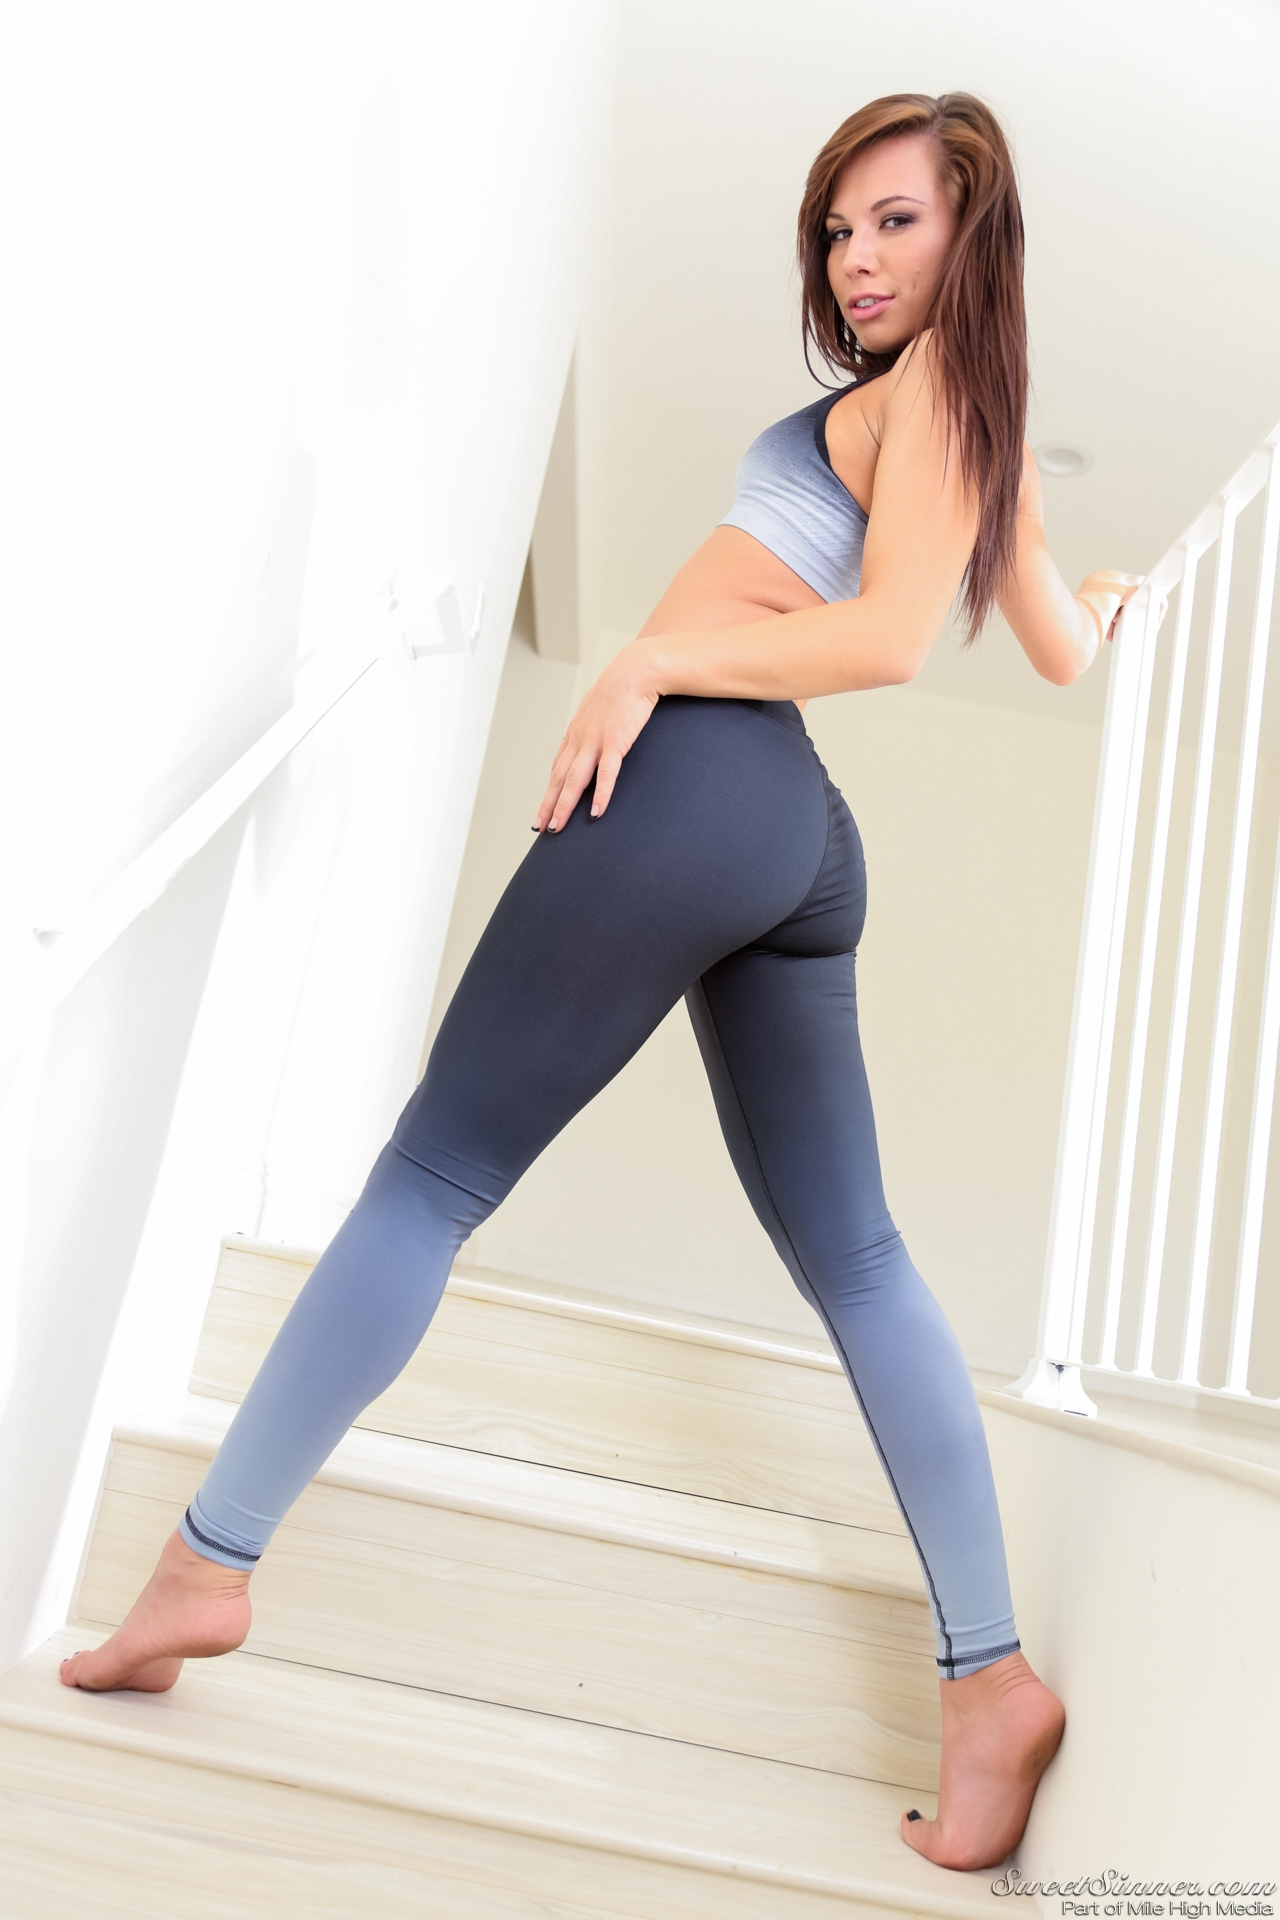 Sexy Slim And Tall Brunette In Yoga Pants Fucks  Most -6984